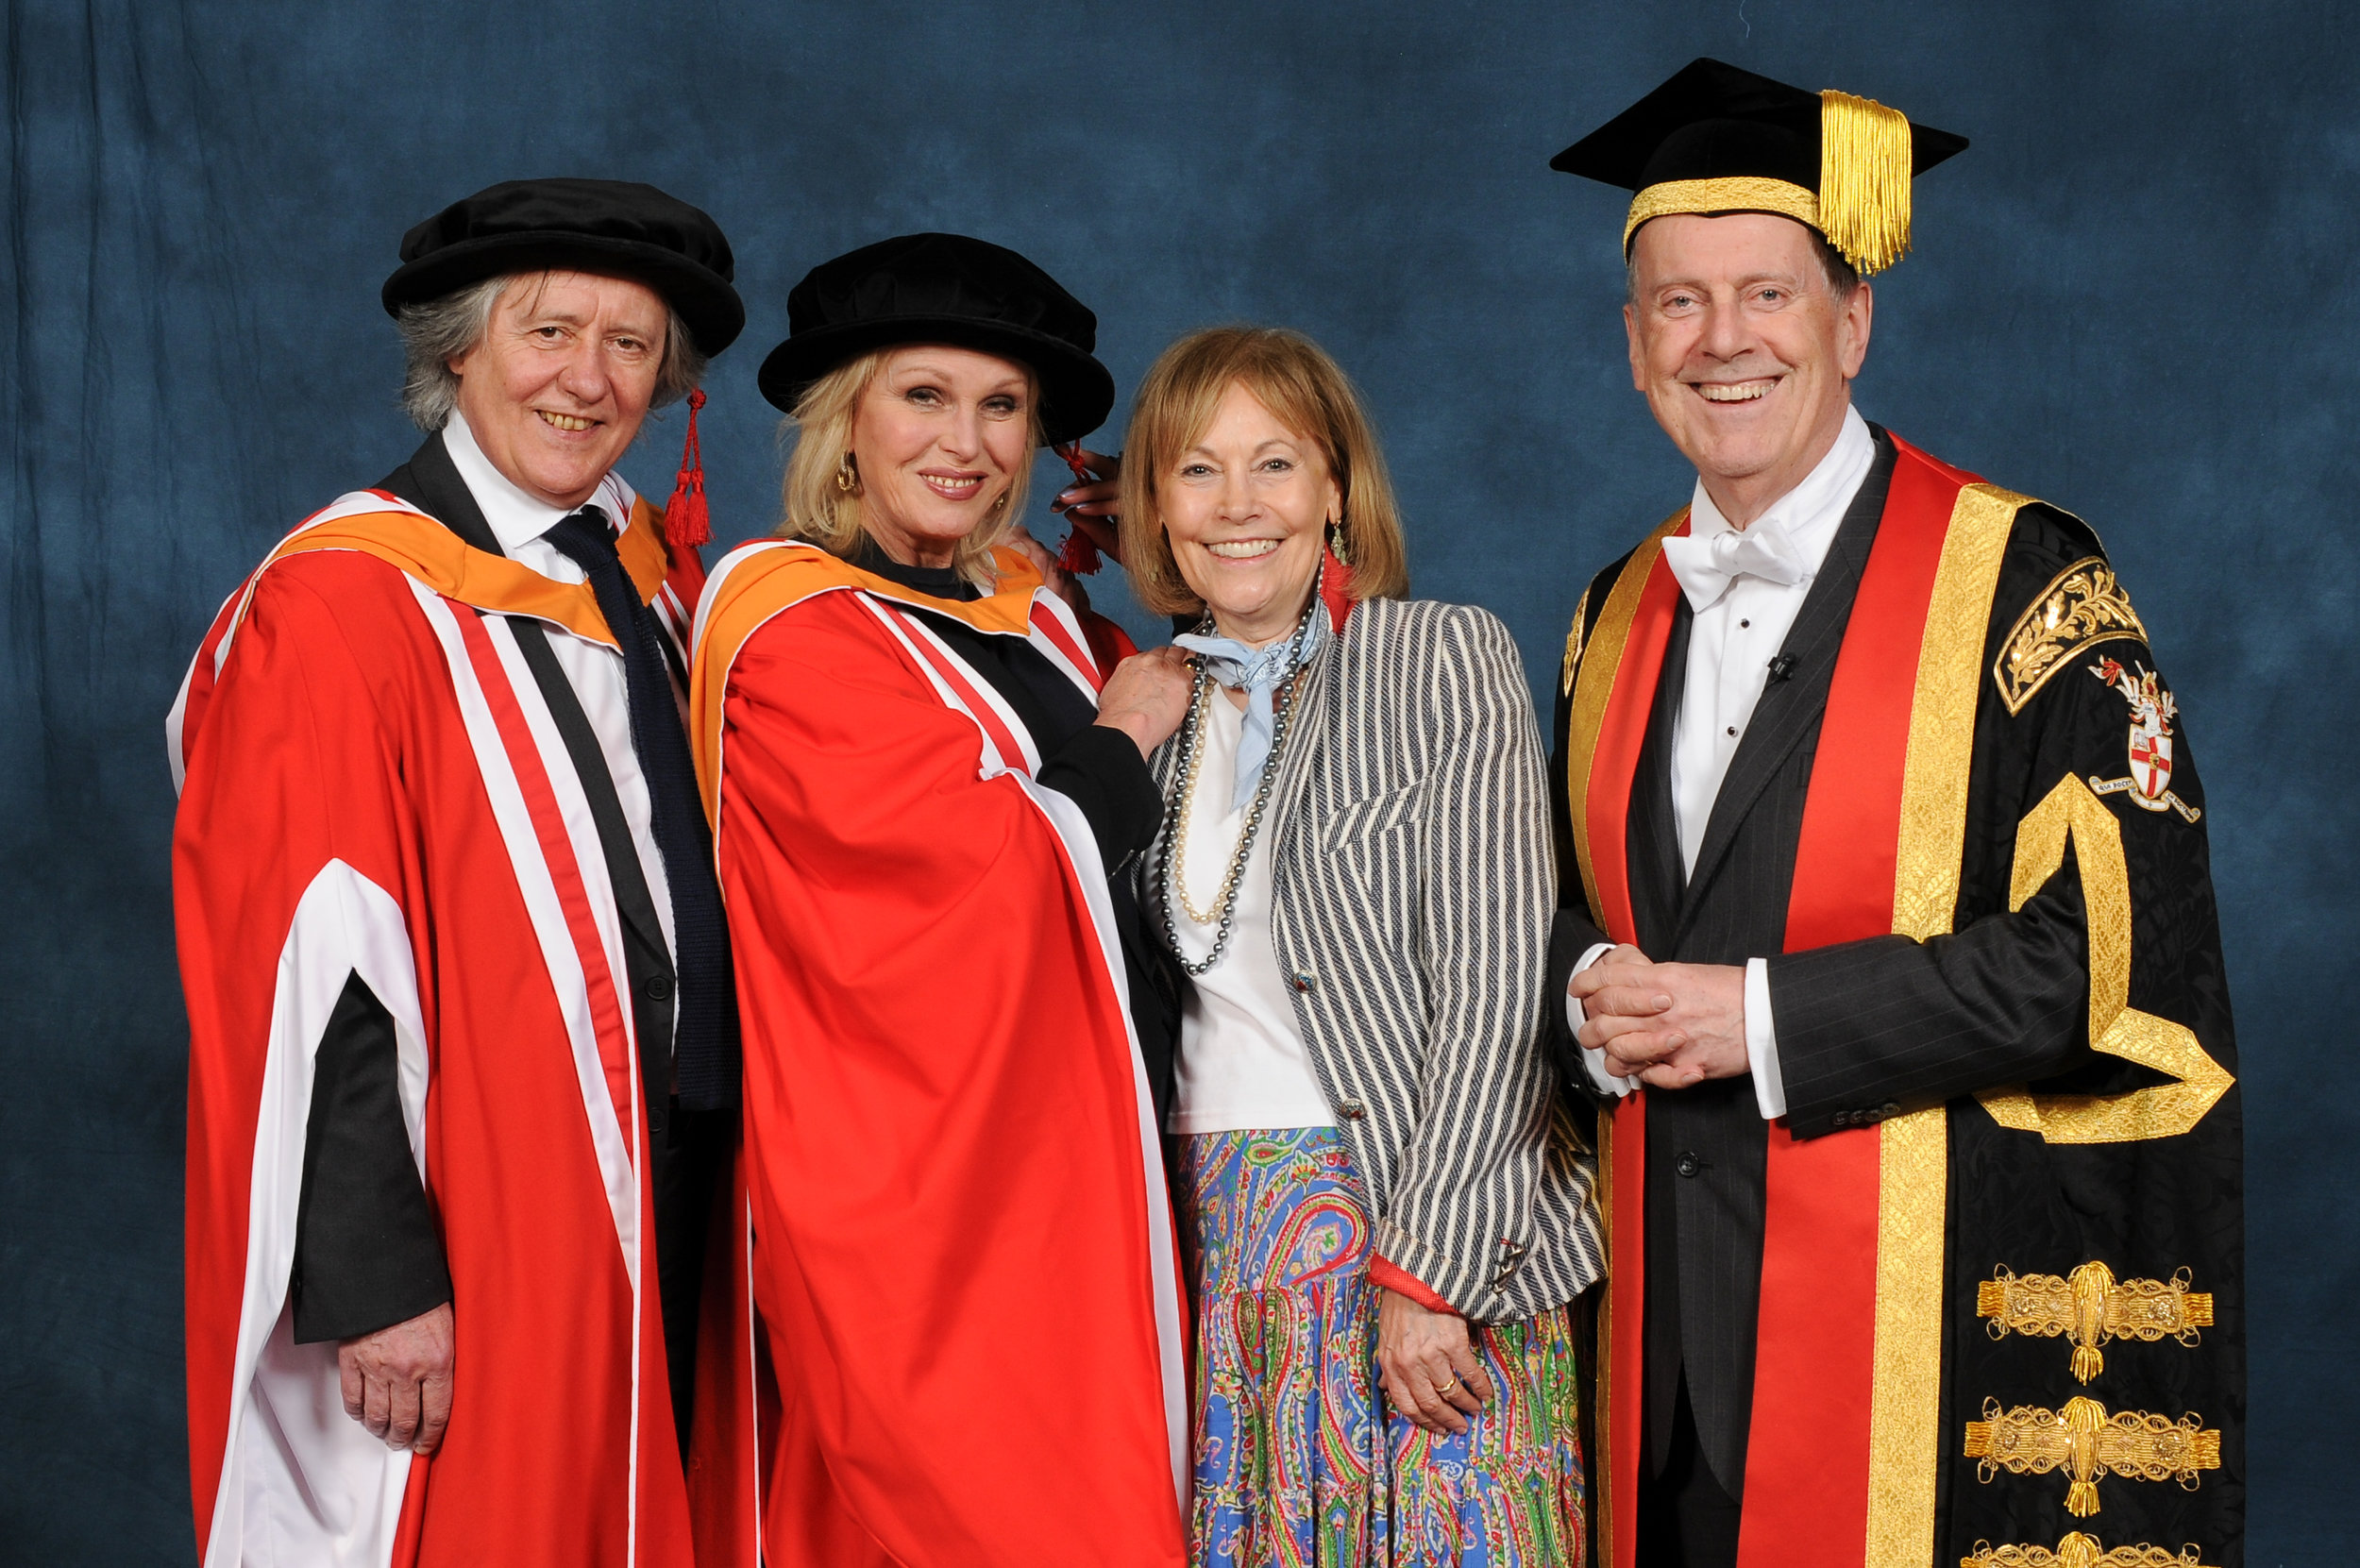 CHANCELLOR OF THE UNIVERSITY OF CHESTER -